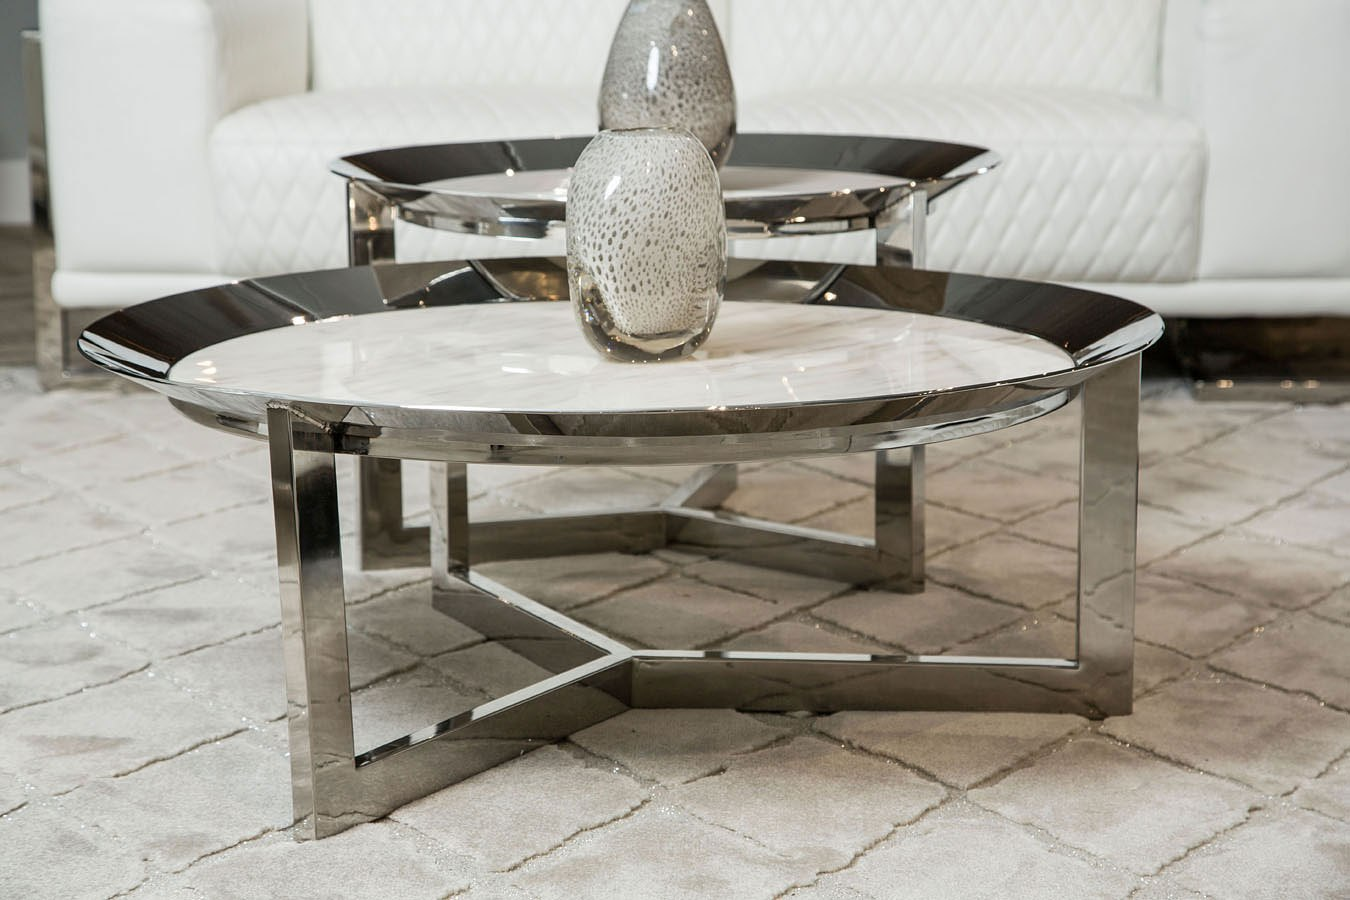 38 Inch Round Table.Halo Round 38 Inch Occasional Table Set